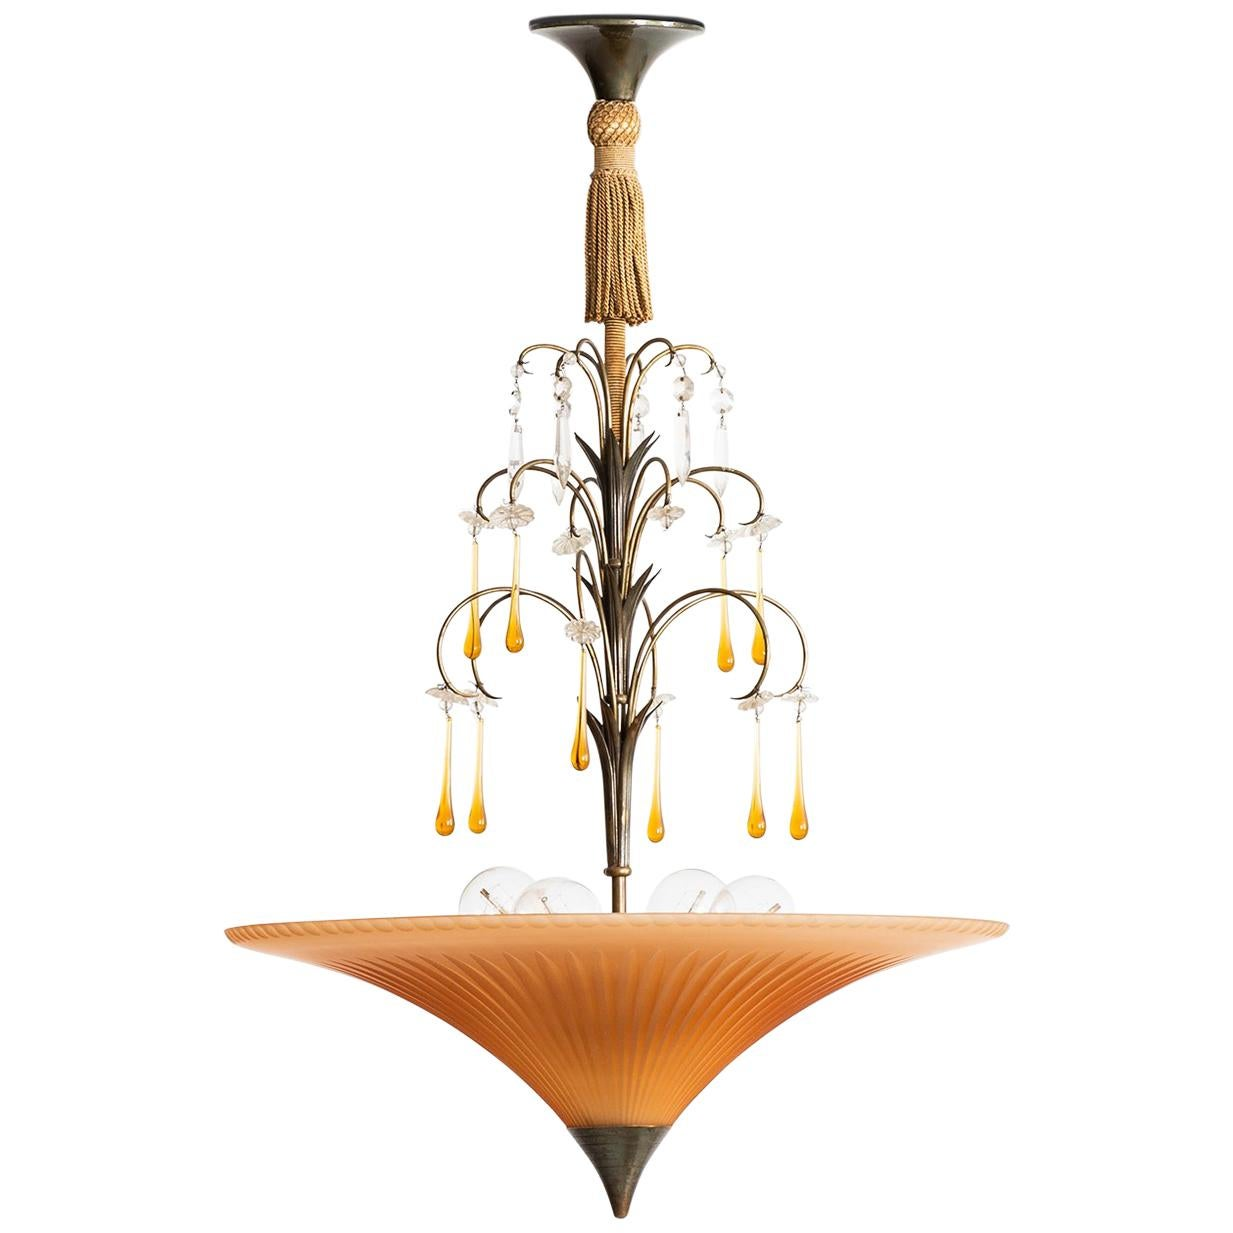 Ceiling Lamp Attributed to Elis Bergh Produced by Böhlmarks in Sweden